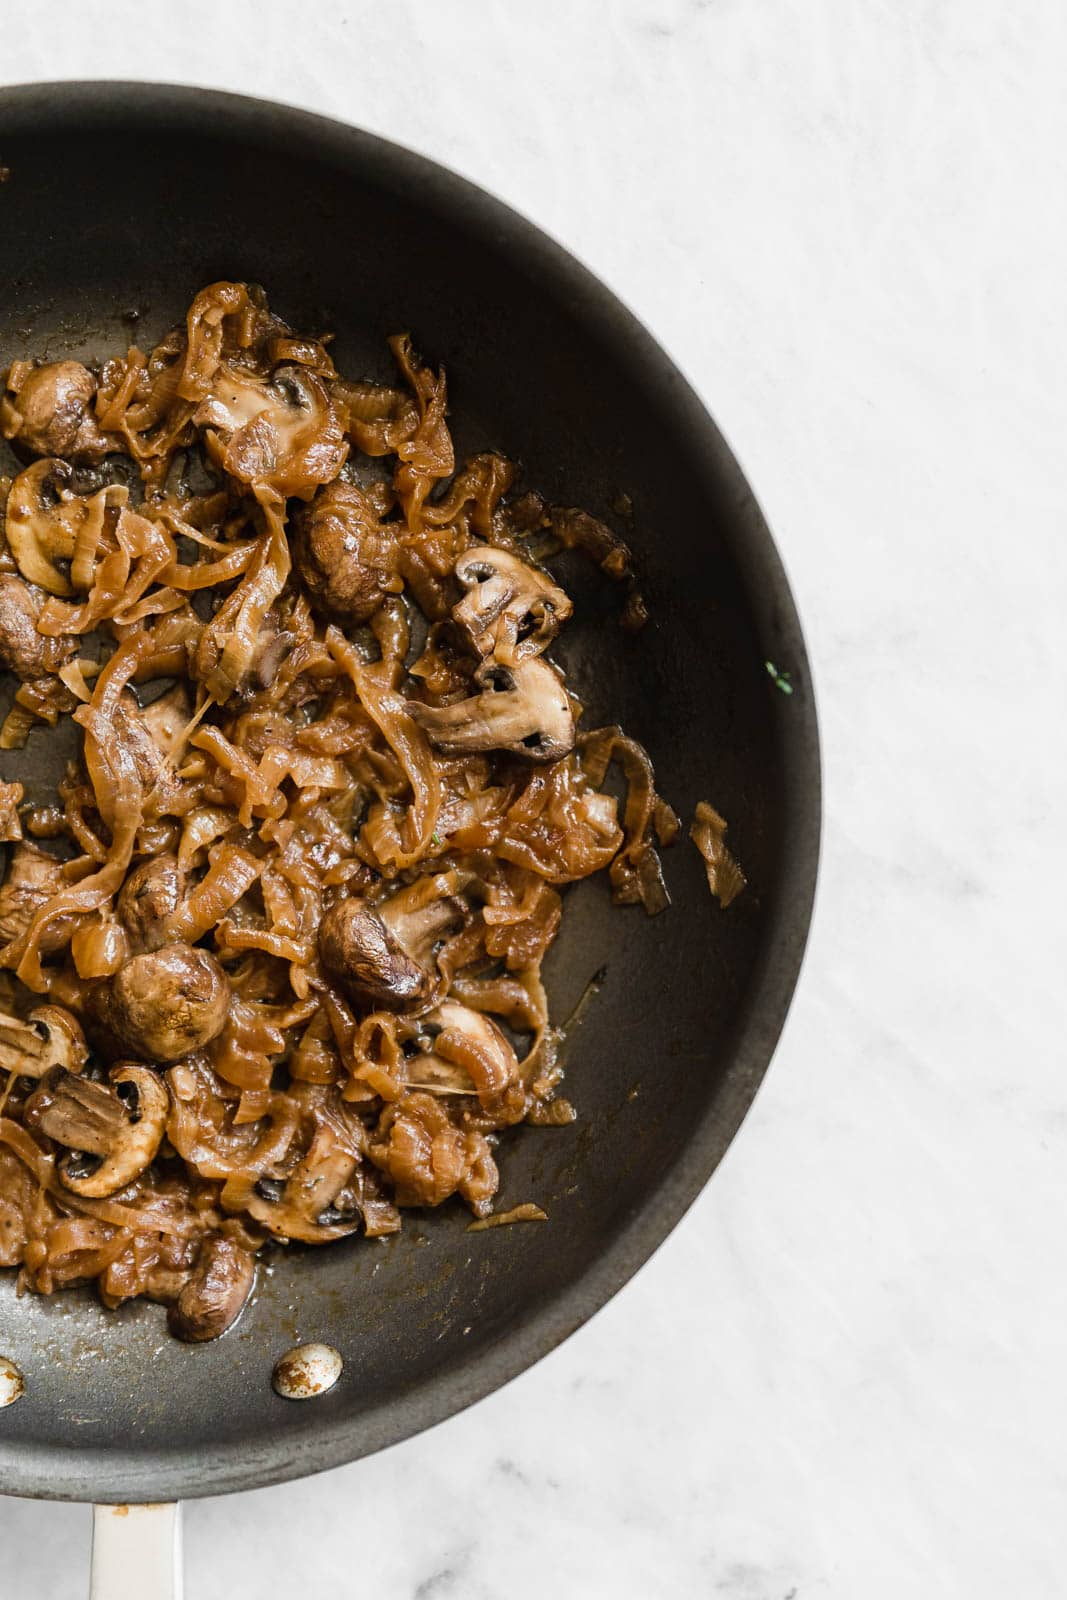 caramelized onions and mushrooms in a skillet